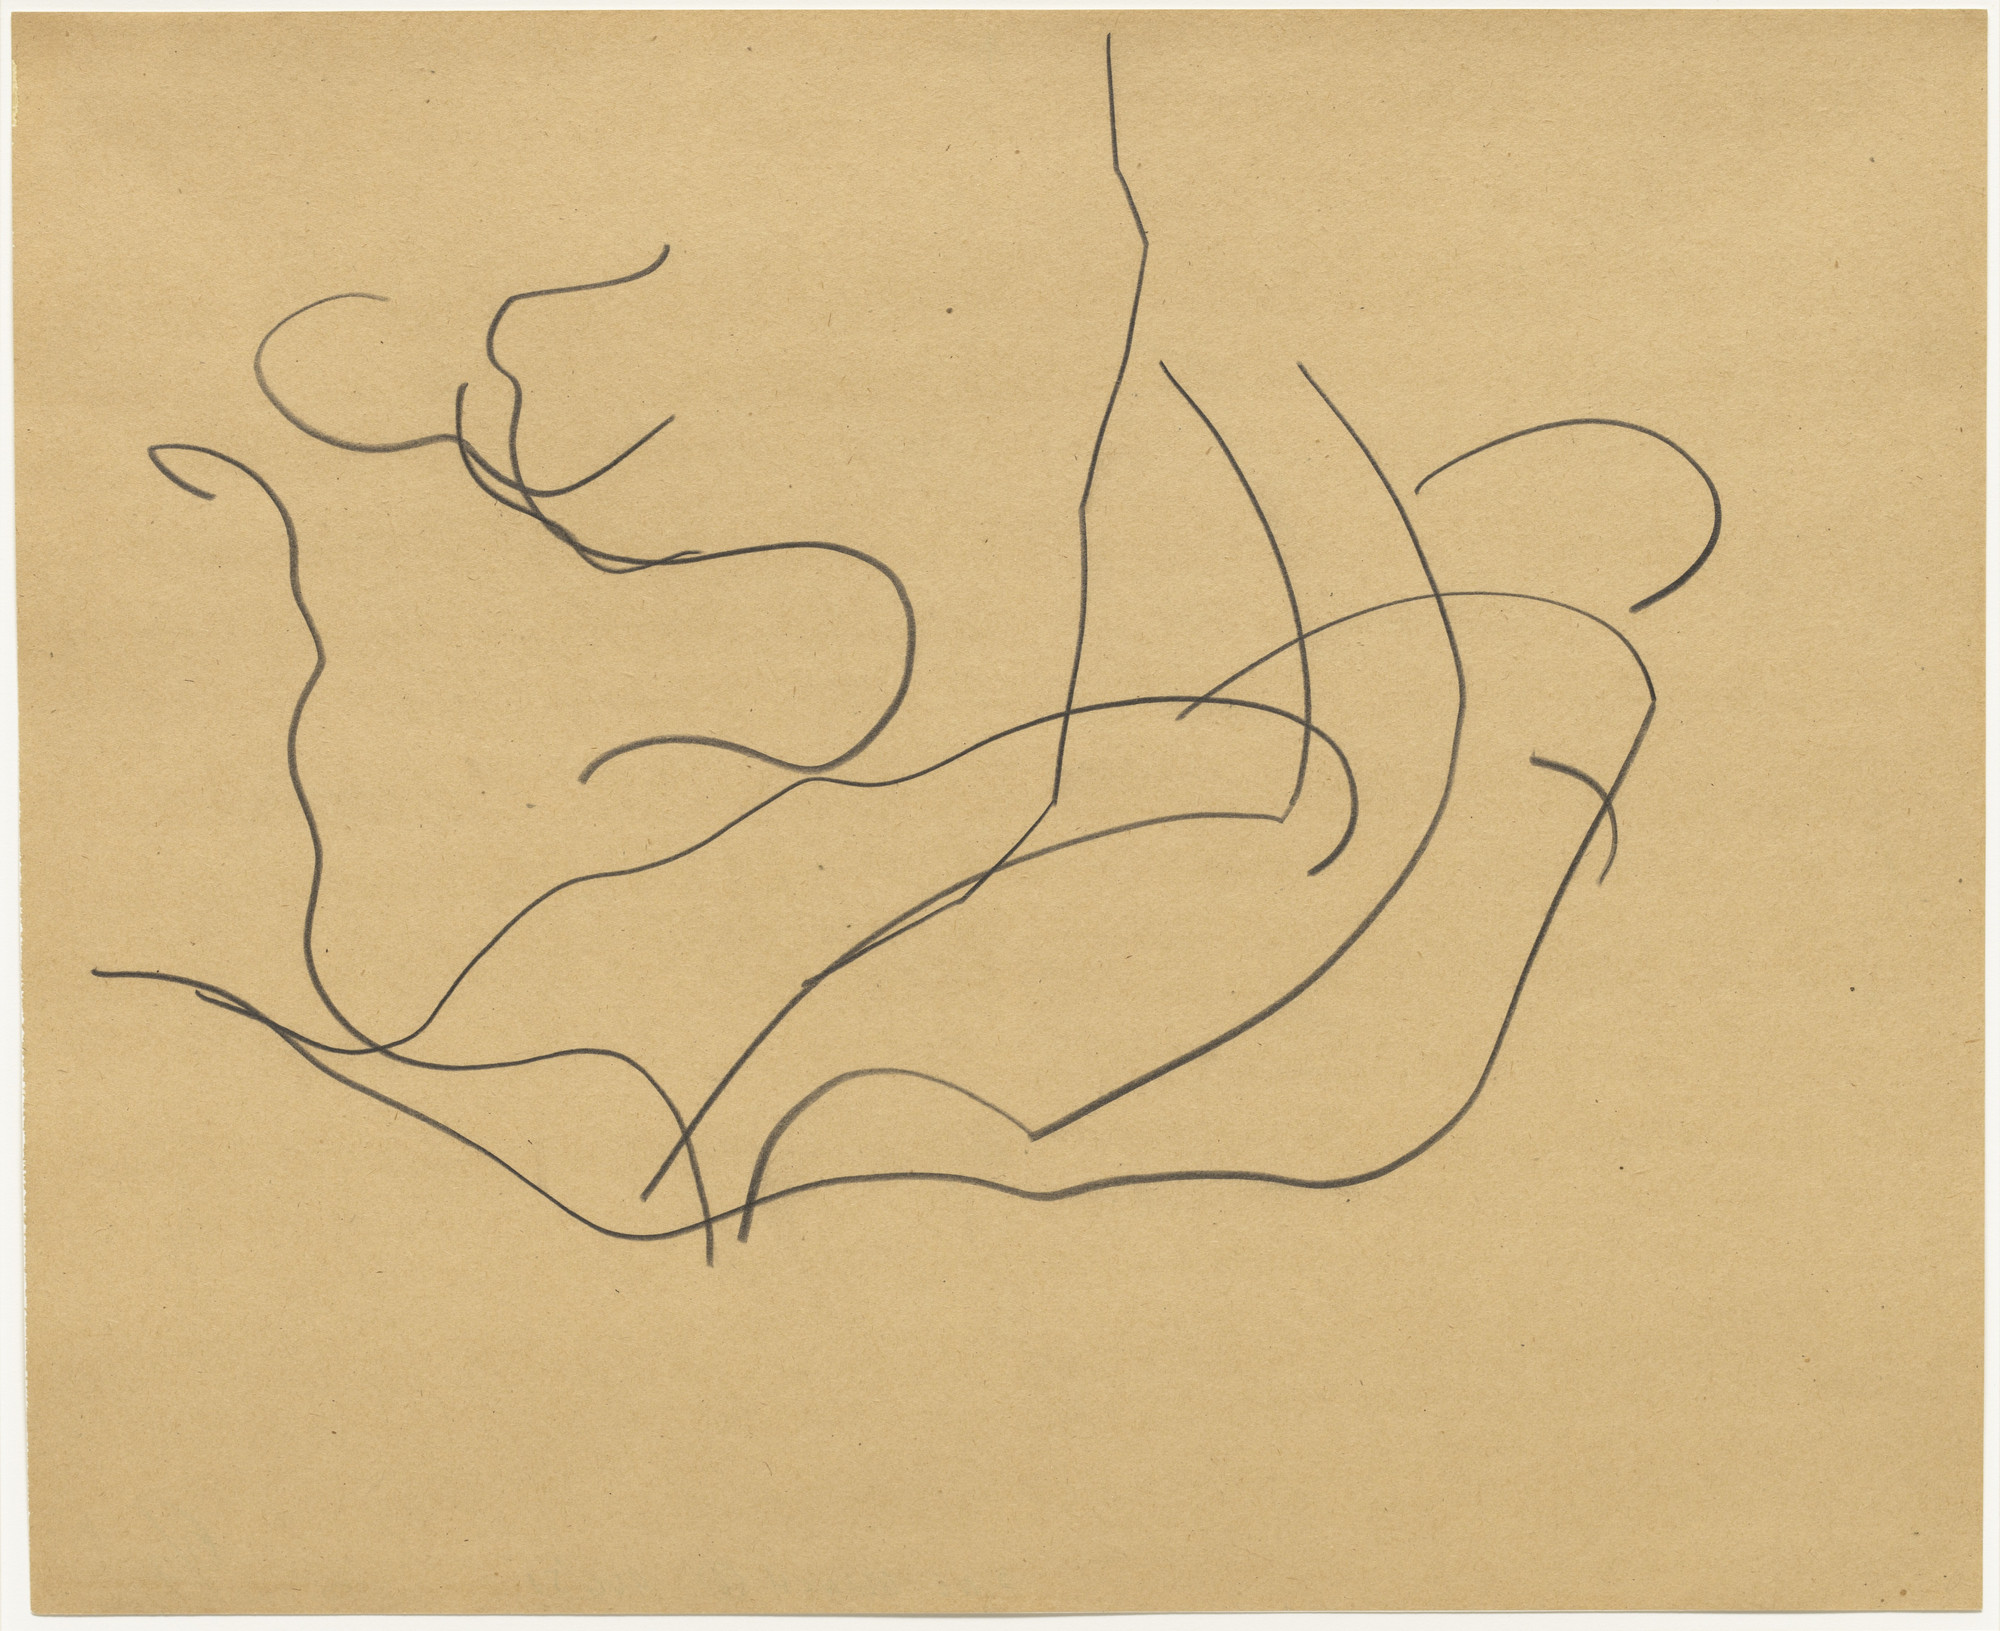 Ellsworth Kelly. Automatic Drawing: Pine Branches VI. 1950